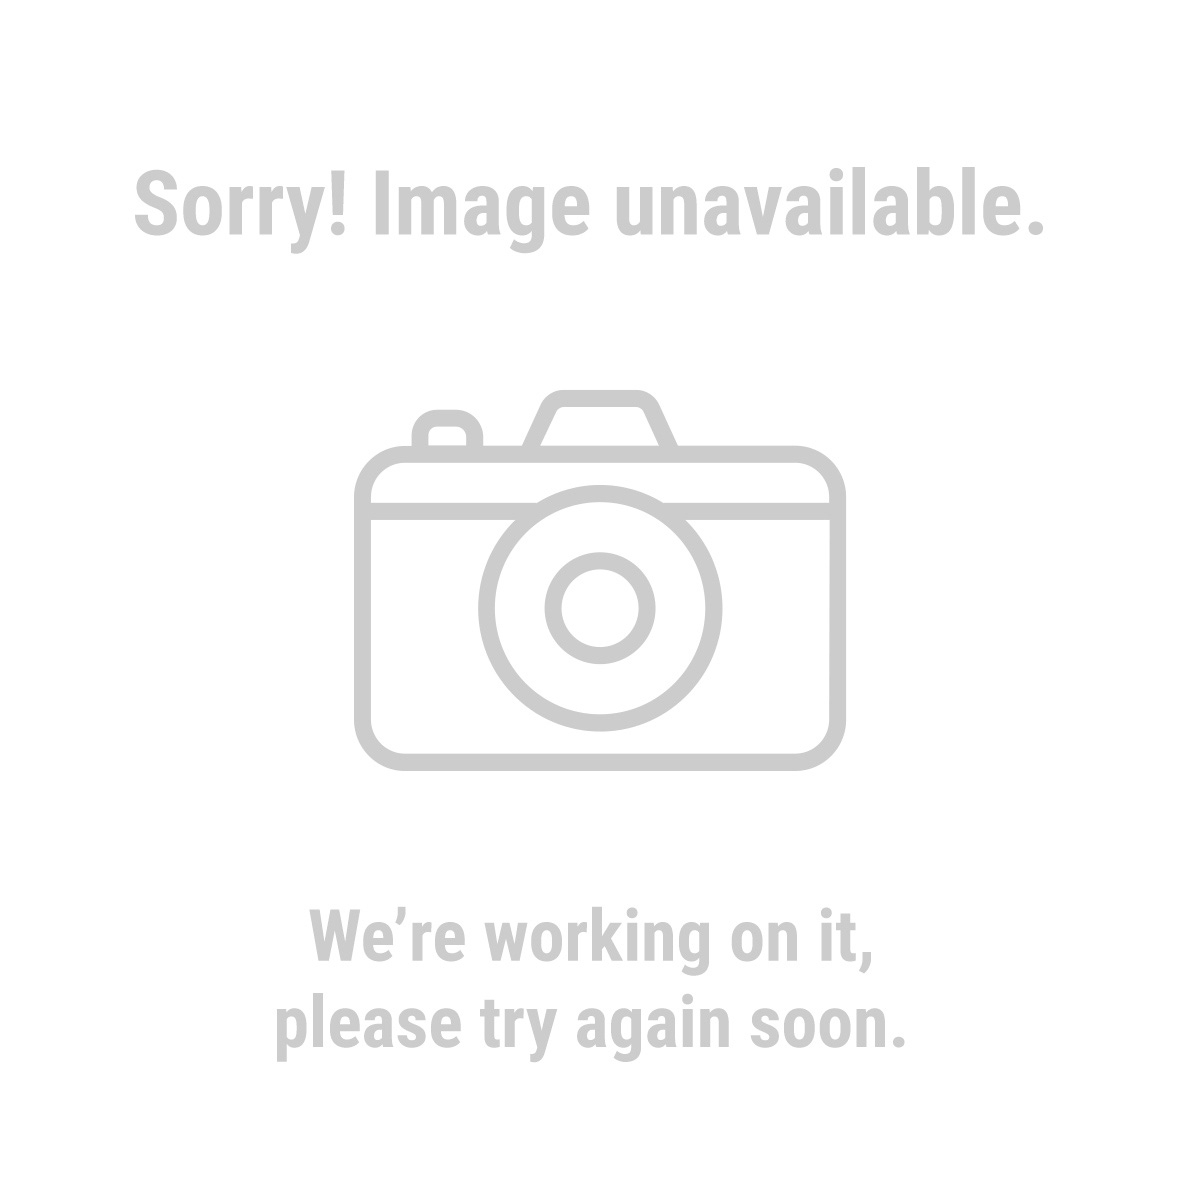 "Moly Carb 529 10"", 40 Tooth M2 High Speed Steel Tipped Saw Blade"